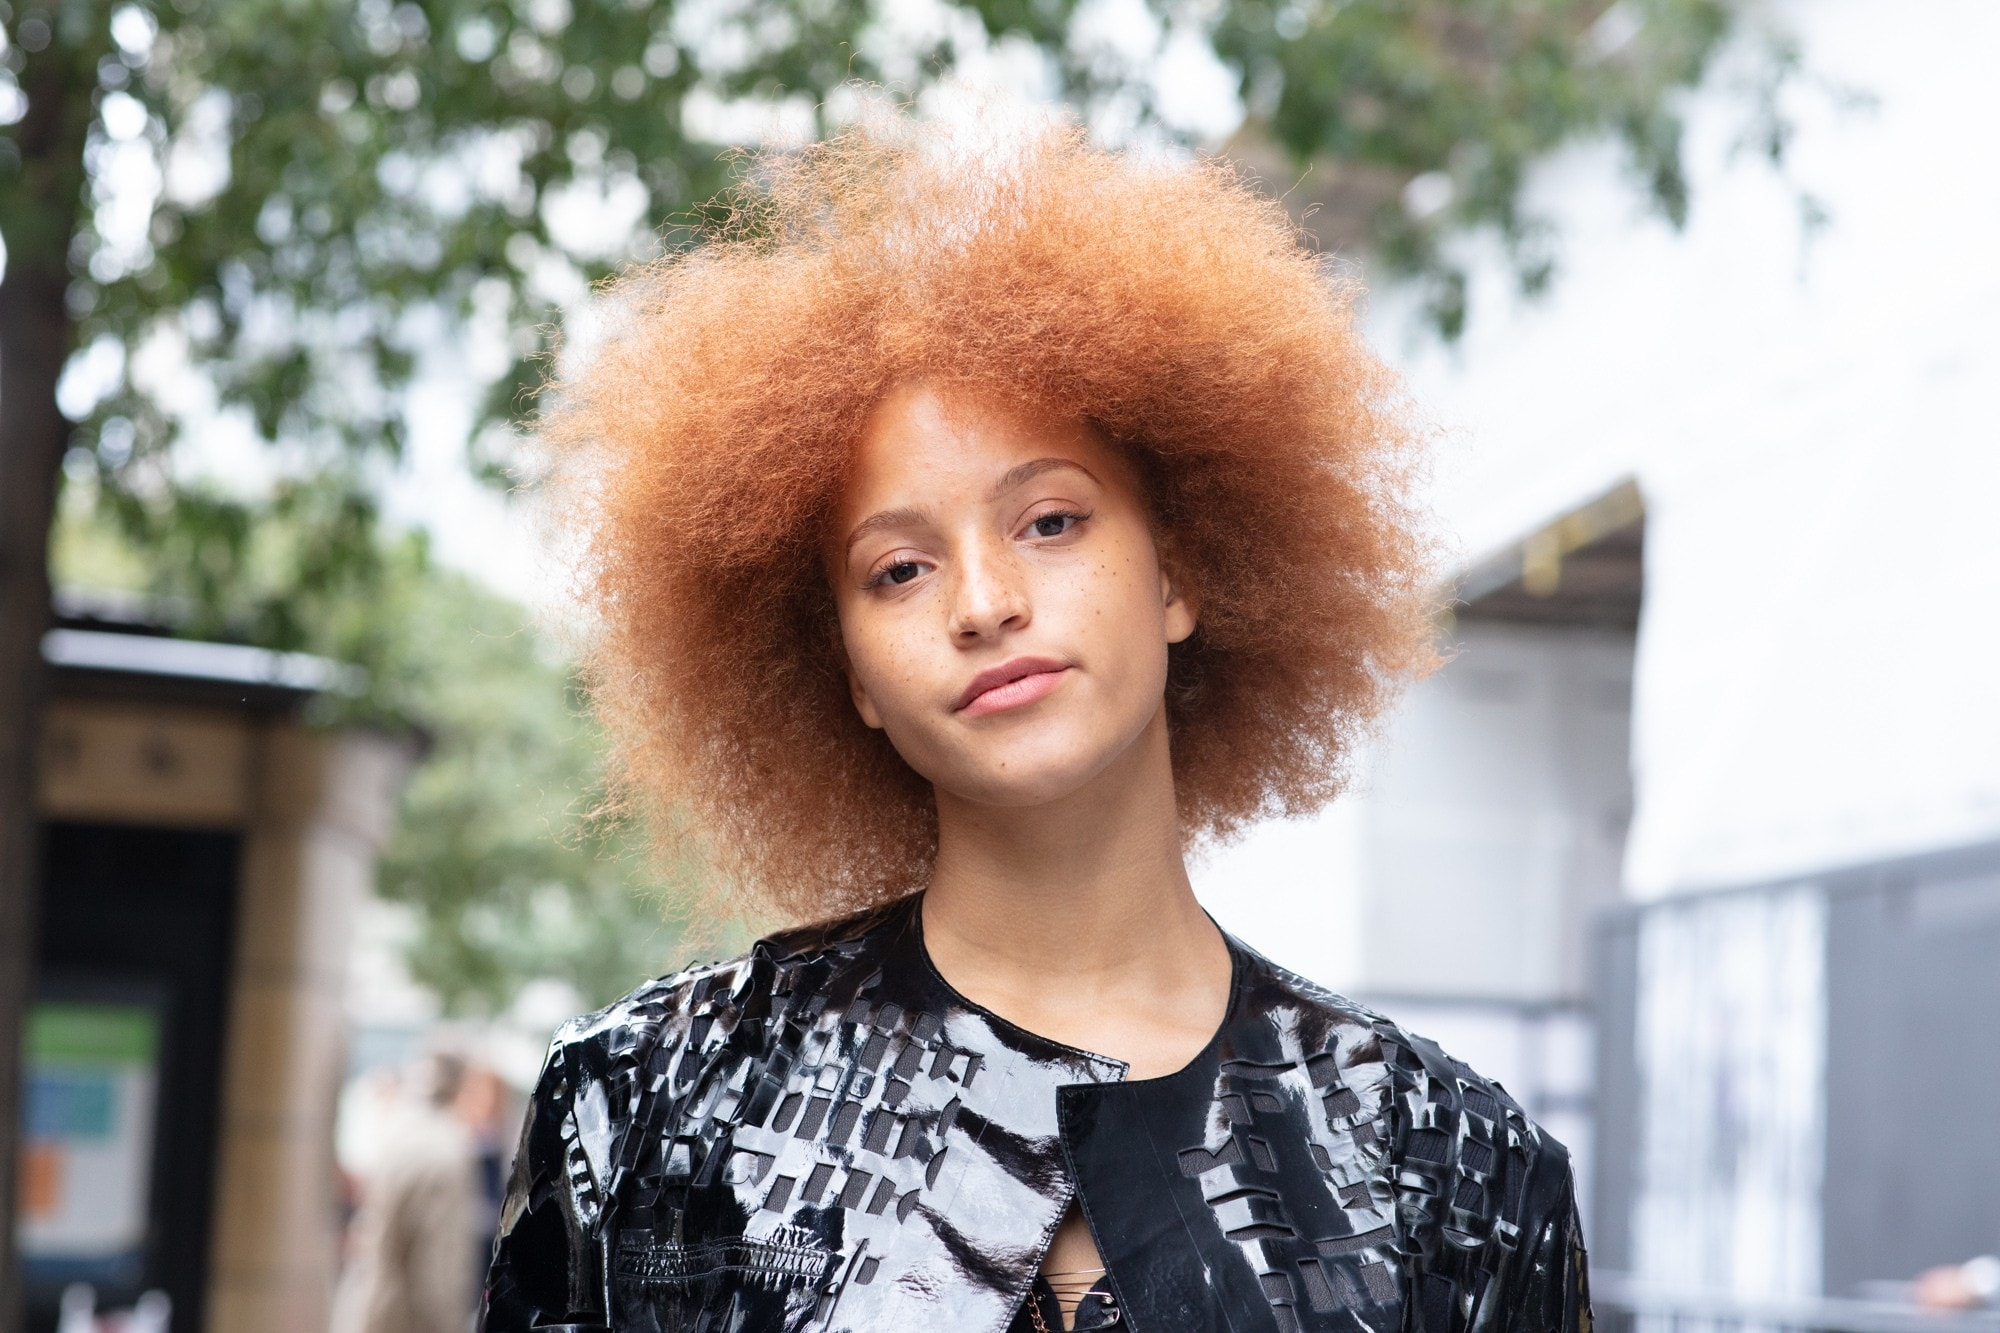 London Fashion Week street style hair: Close up shot of a woman with a ginger, fluffed out medium afro wearing a printed shirt and posing on the street